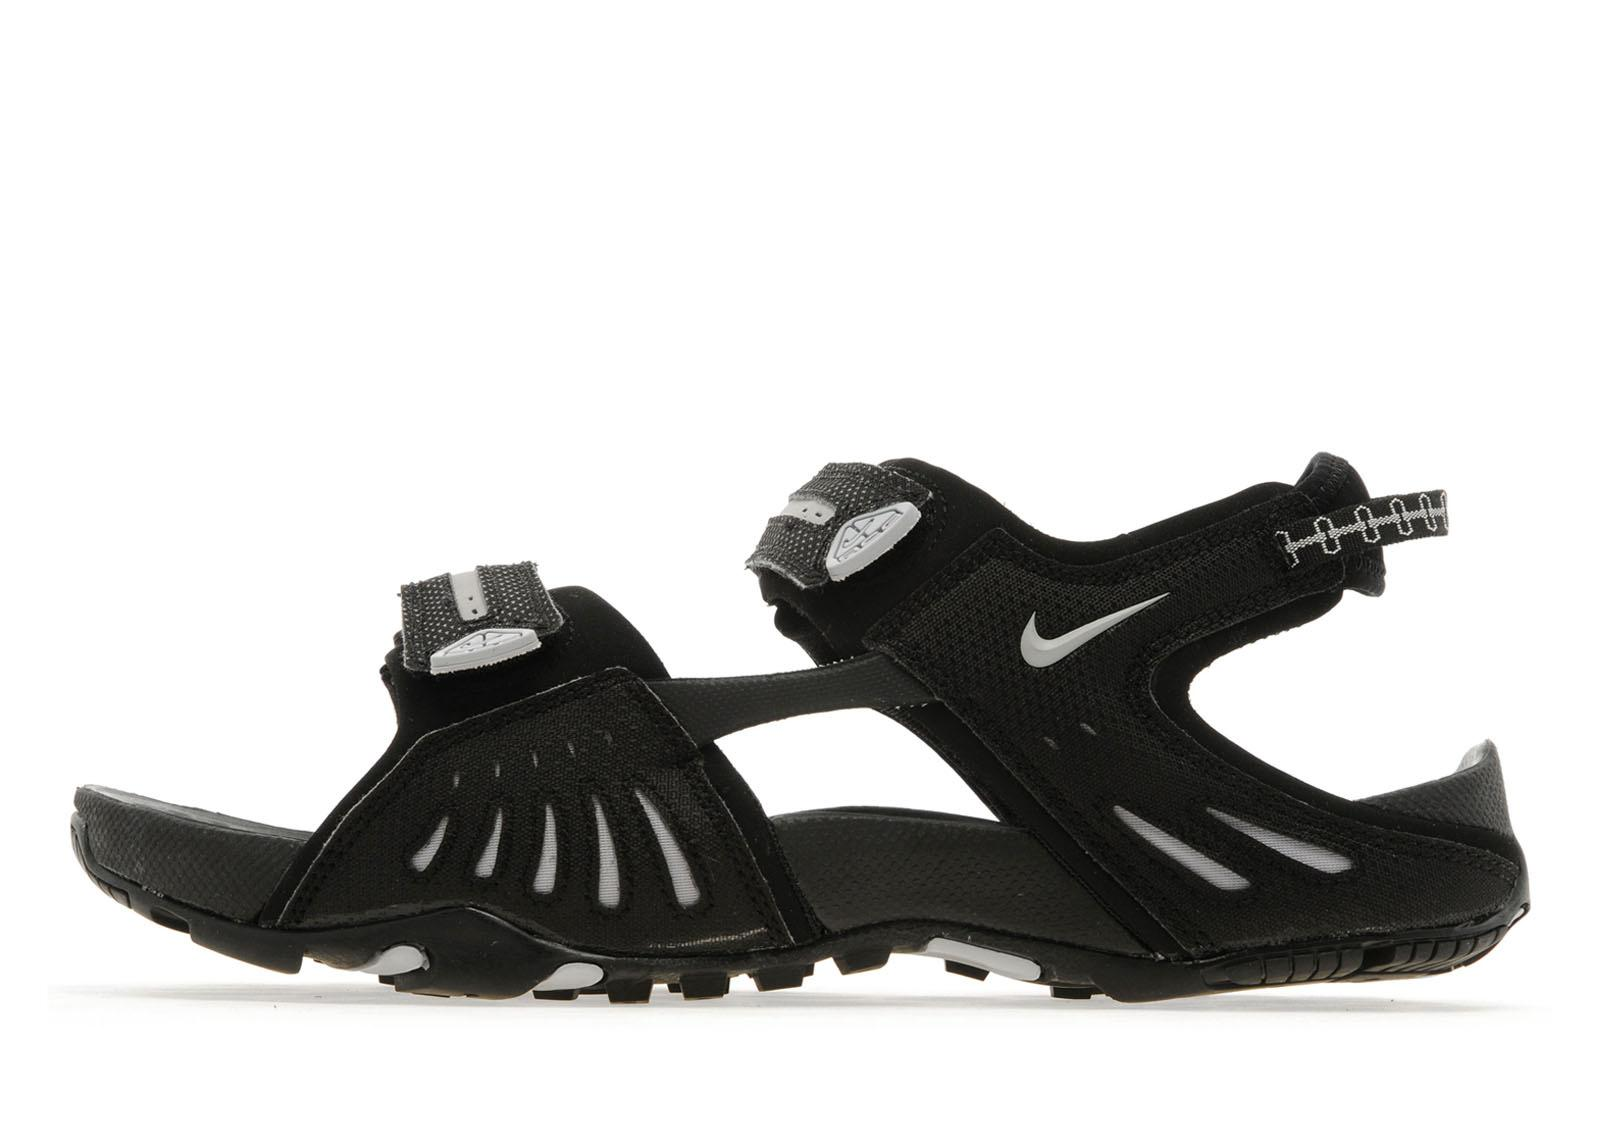 d2e4fbe382a Nike Santiam Sandals For Men | The River City News